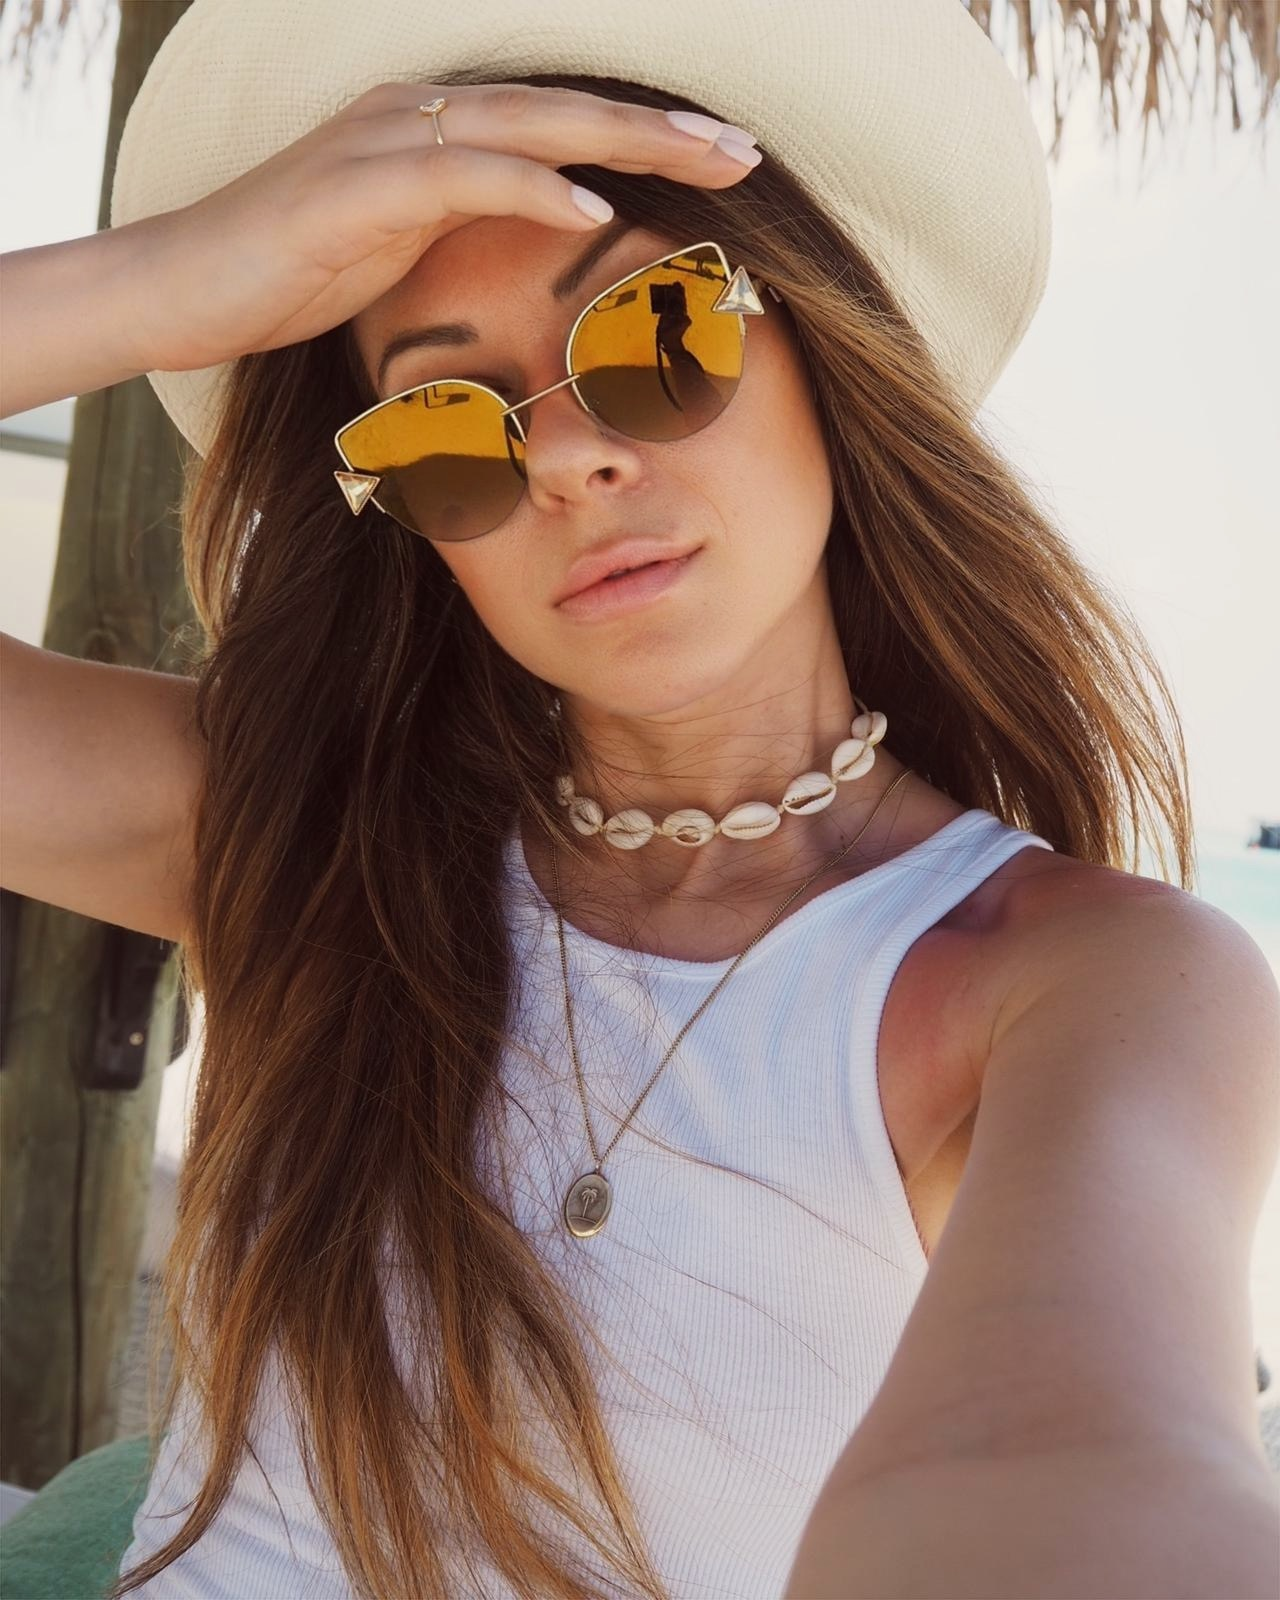 white tank top outfit | Julia Lundin